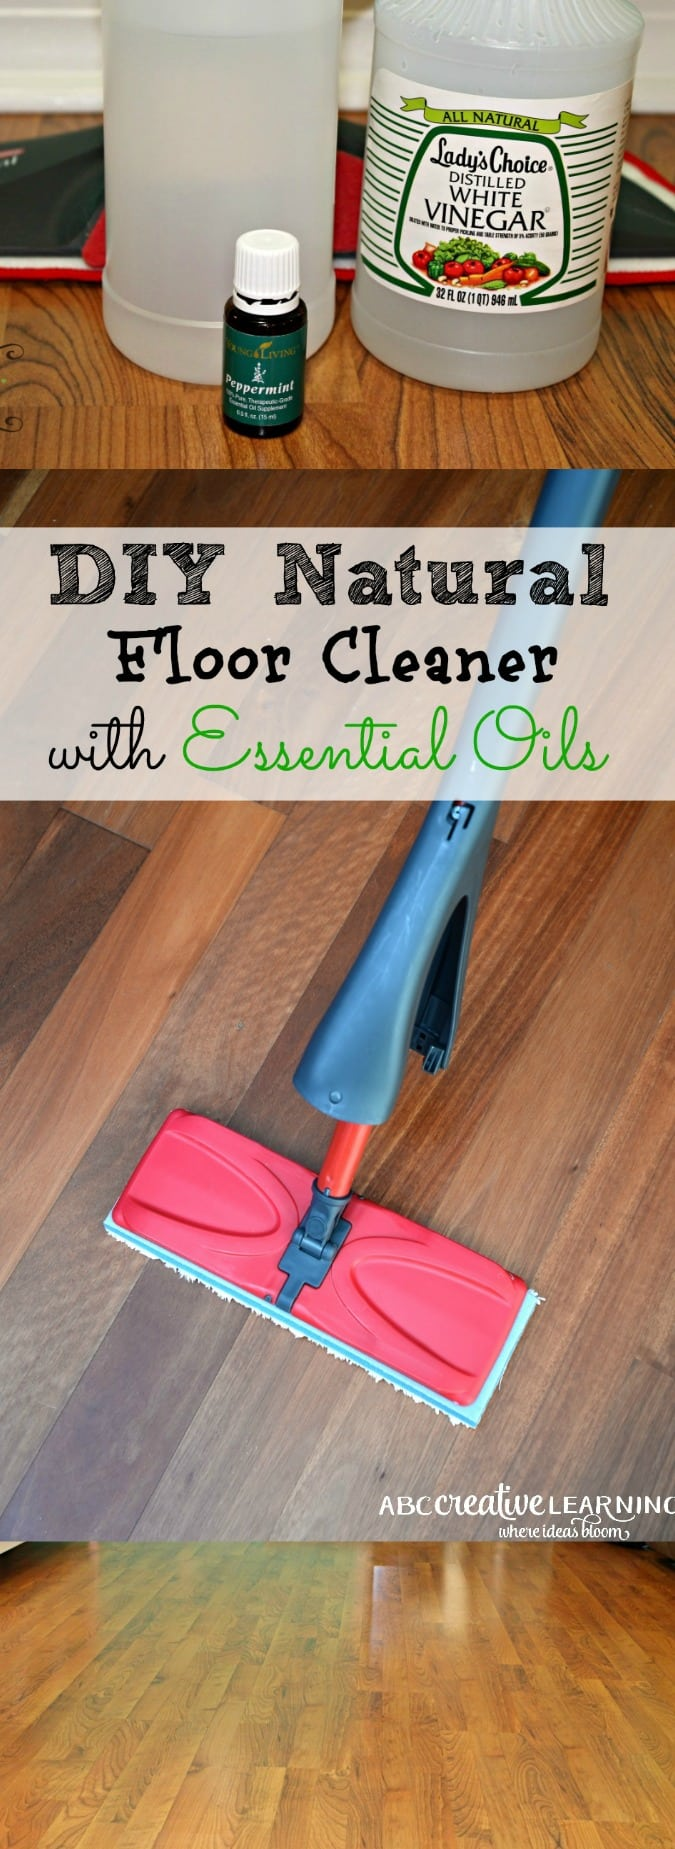 Easy DIY Natural Floor Cleaner for laminate floors with Essential Oils - simplytodaylife.com